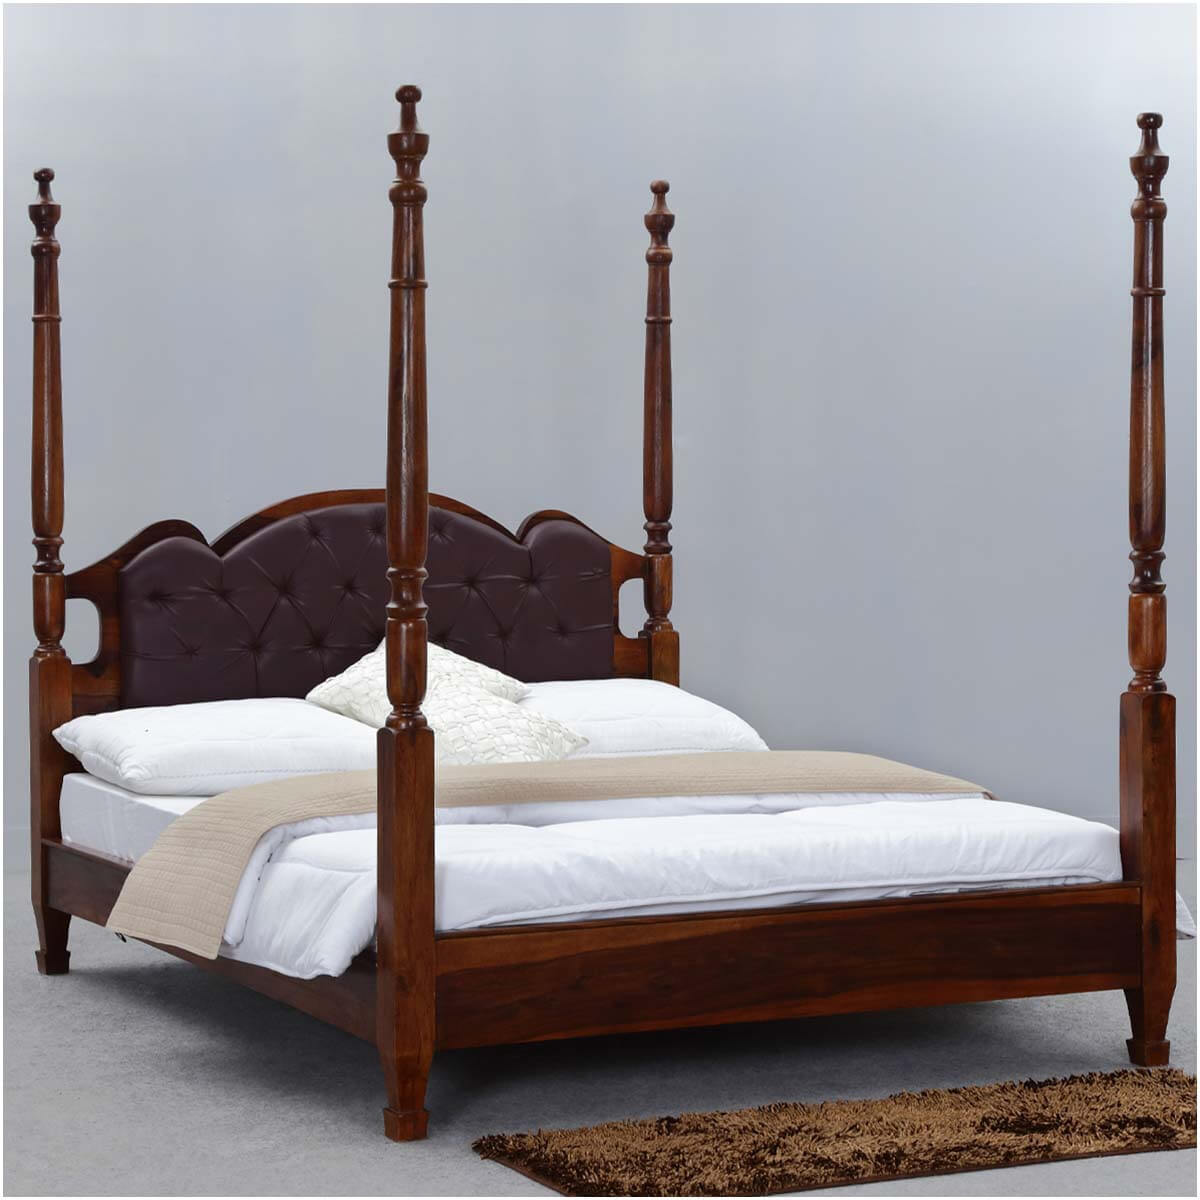 Wood Four Poster Beds Four Poster King Size Bed Frame English Tudor Solid Wood